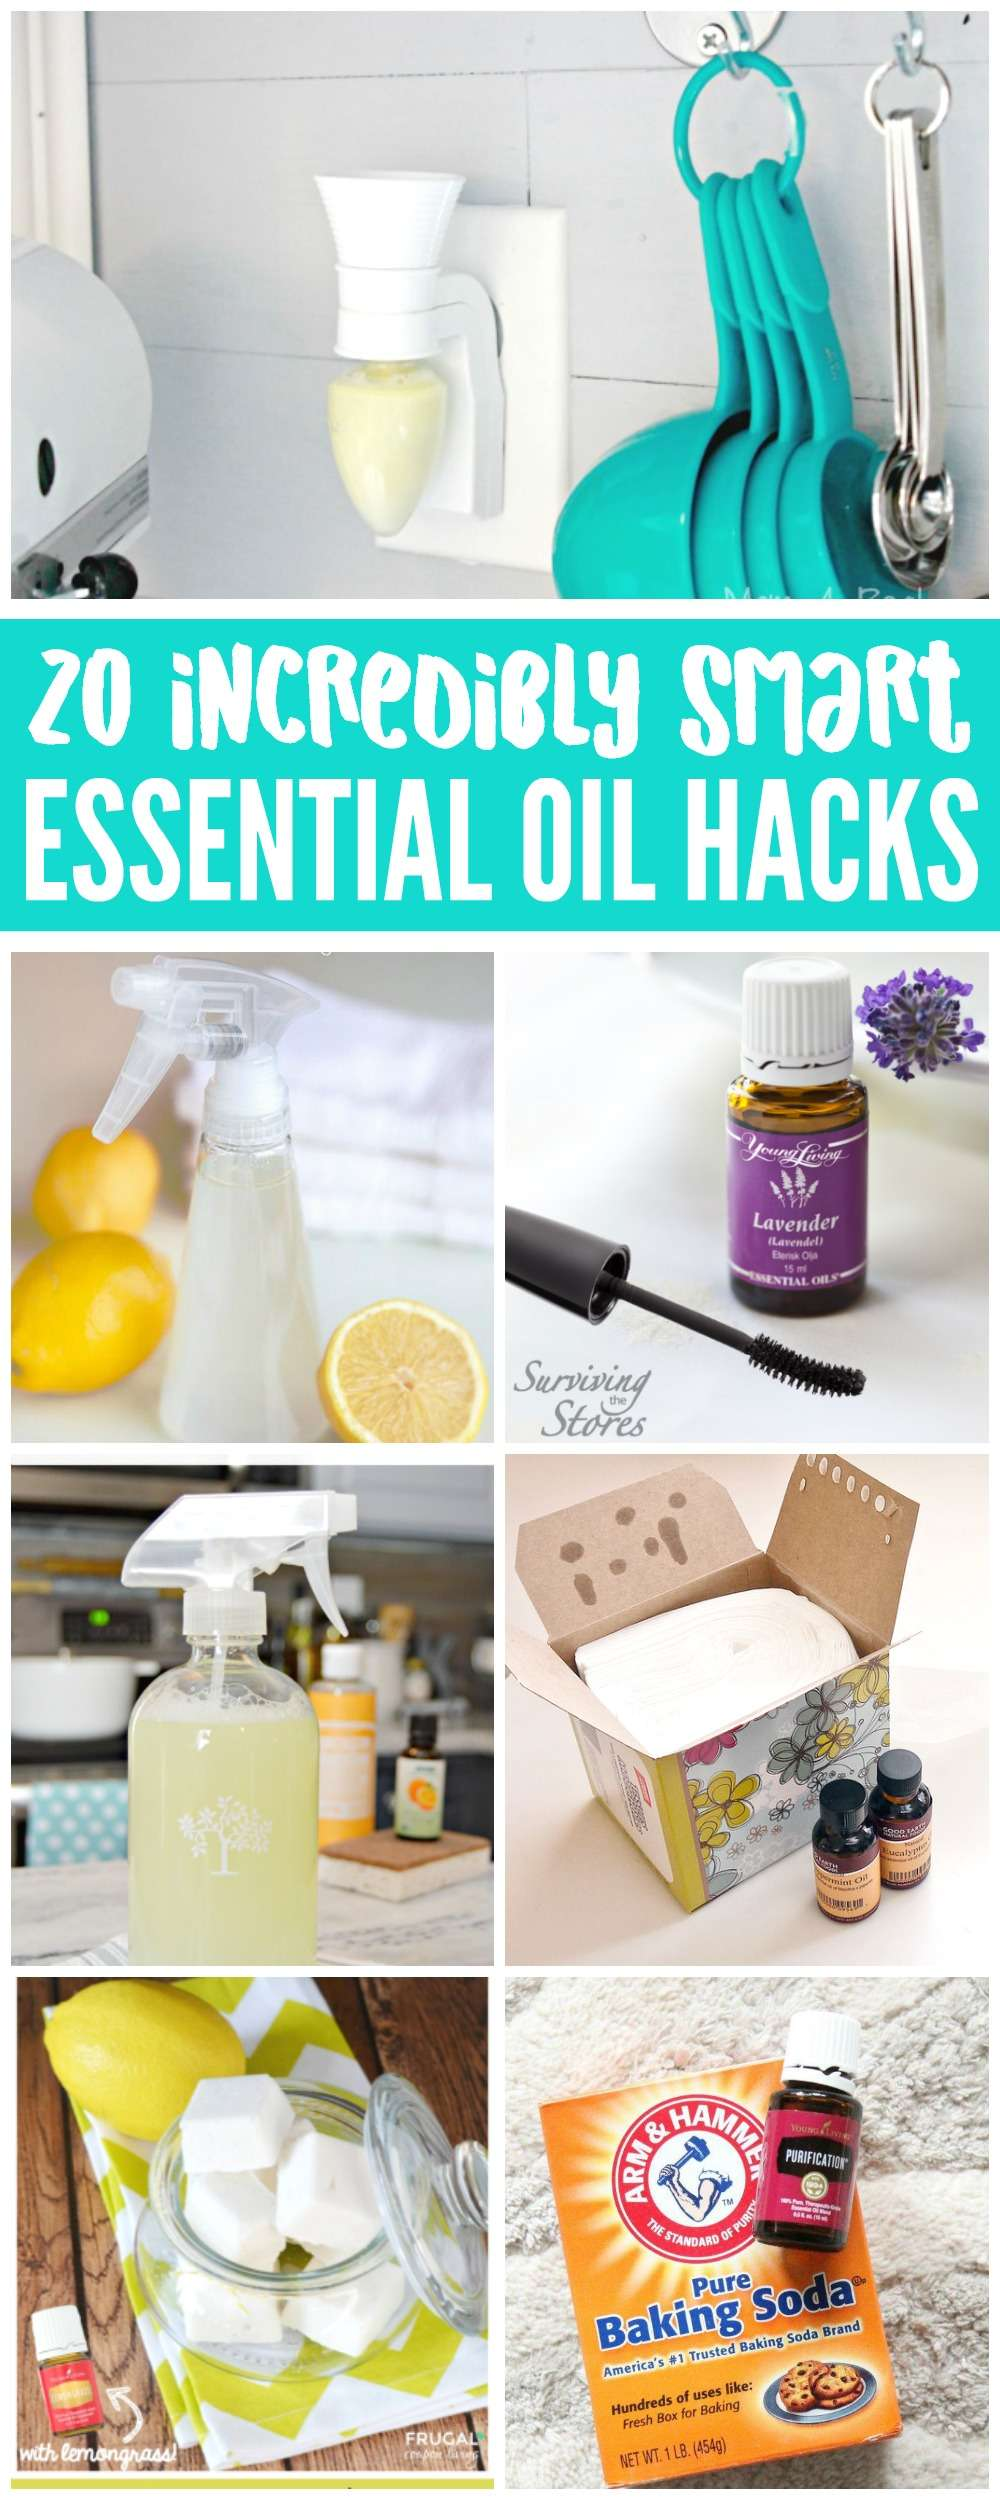 Essential Oil Cleaning Hacks that will make your life easier, clean your Bathroom, Kitchen, Living Room and more using these diy cleaning recipes with essential oils.